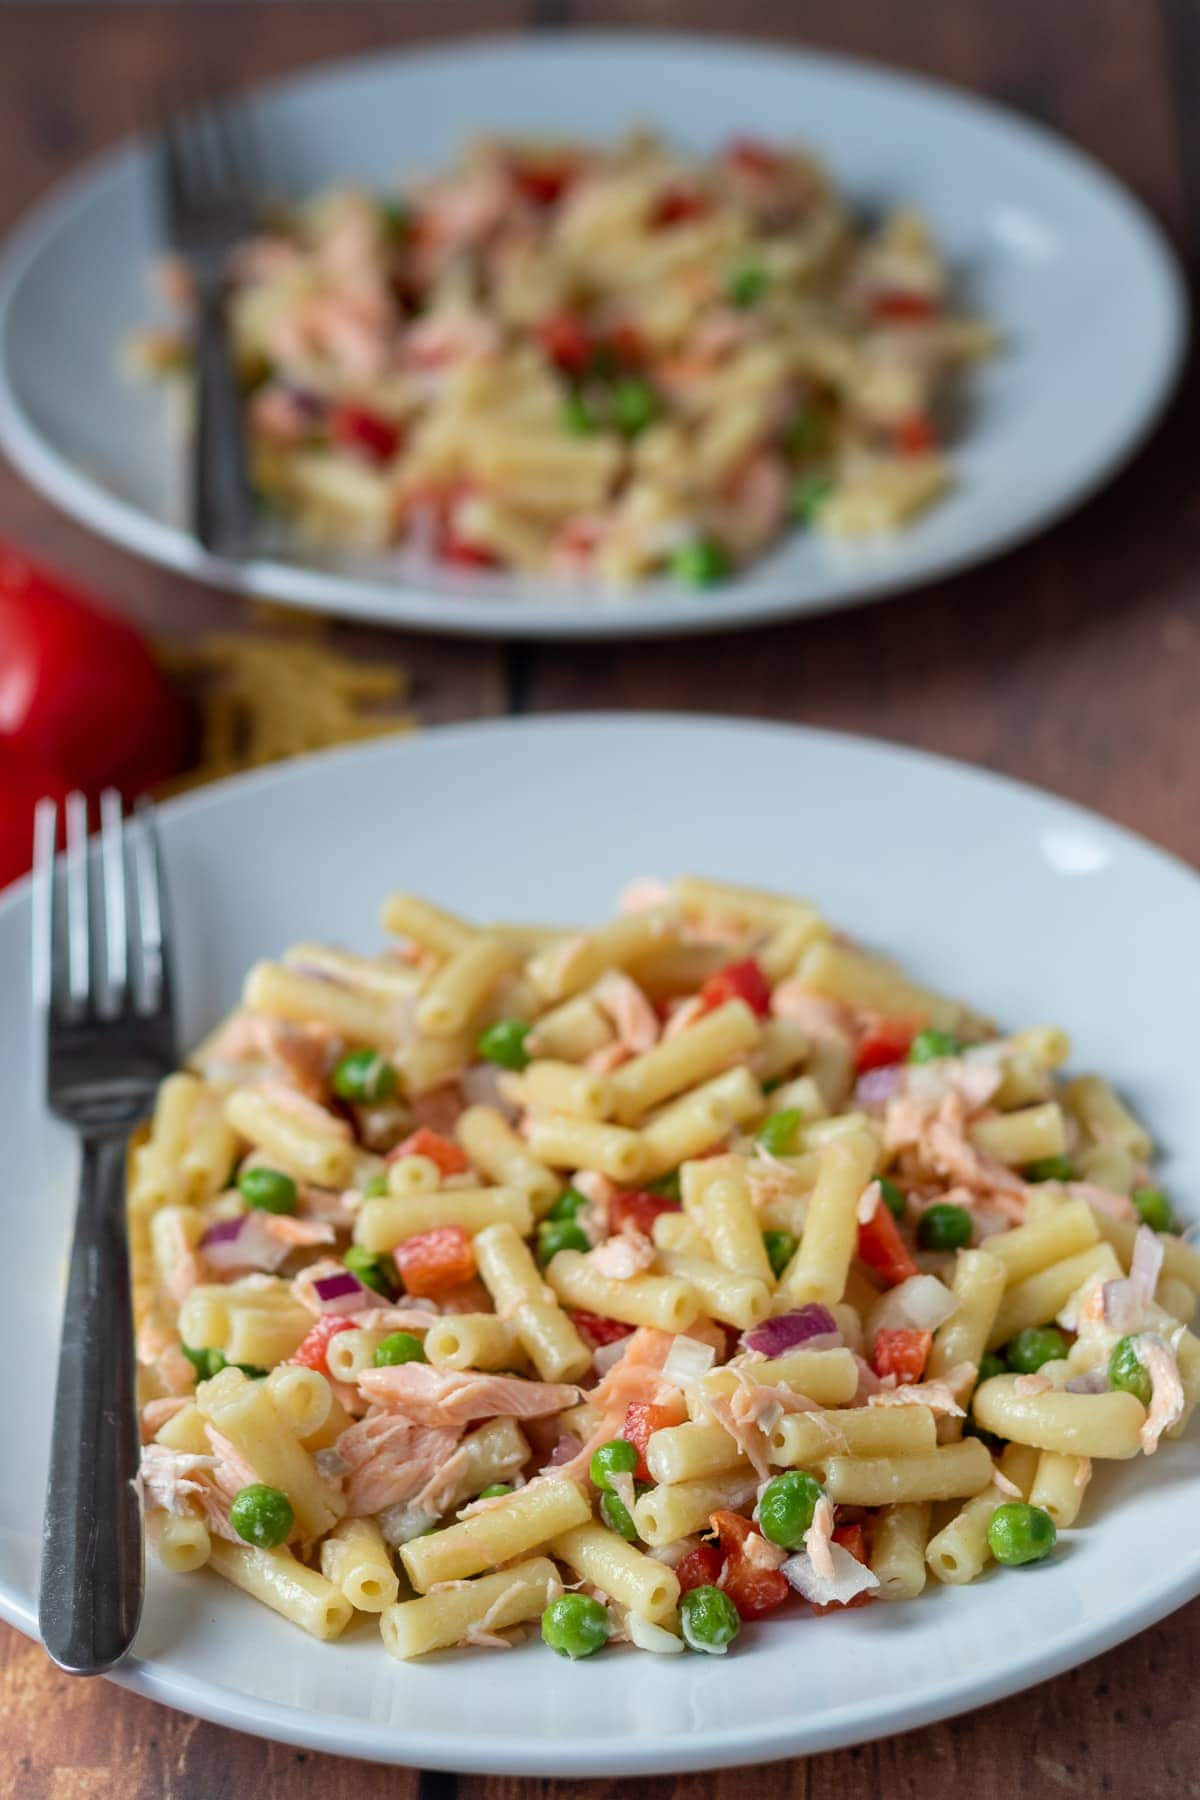 Two plates of salmon macaroni salad one in front of another with forks on.